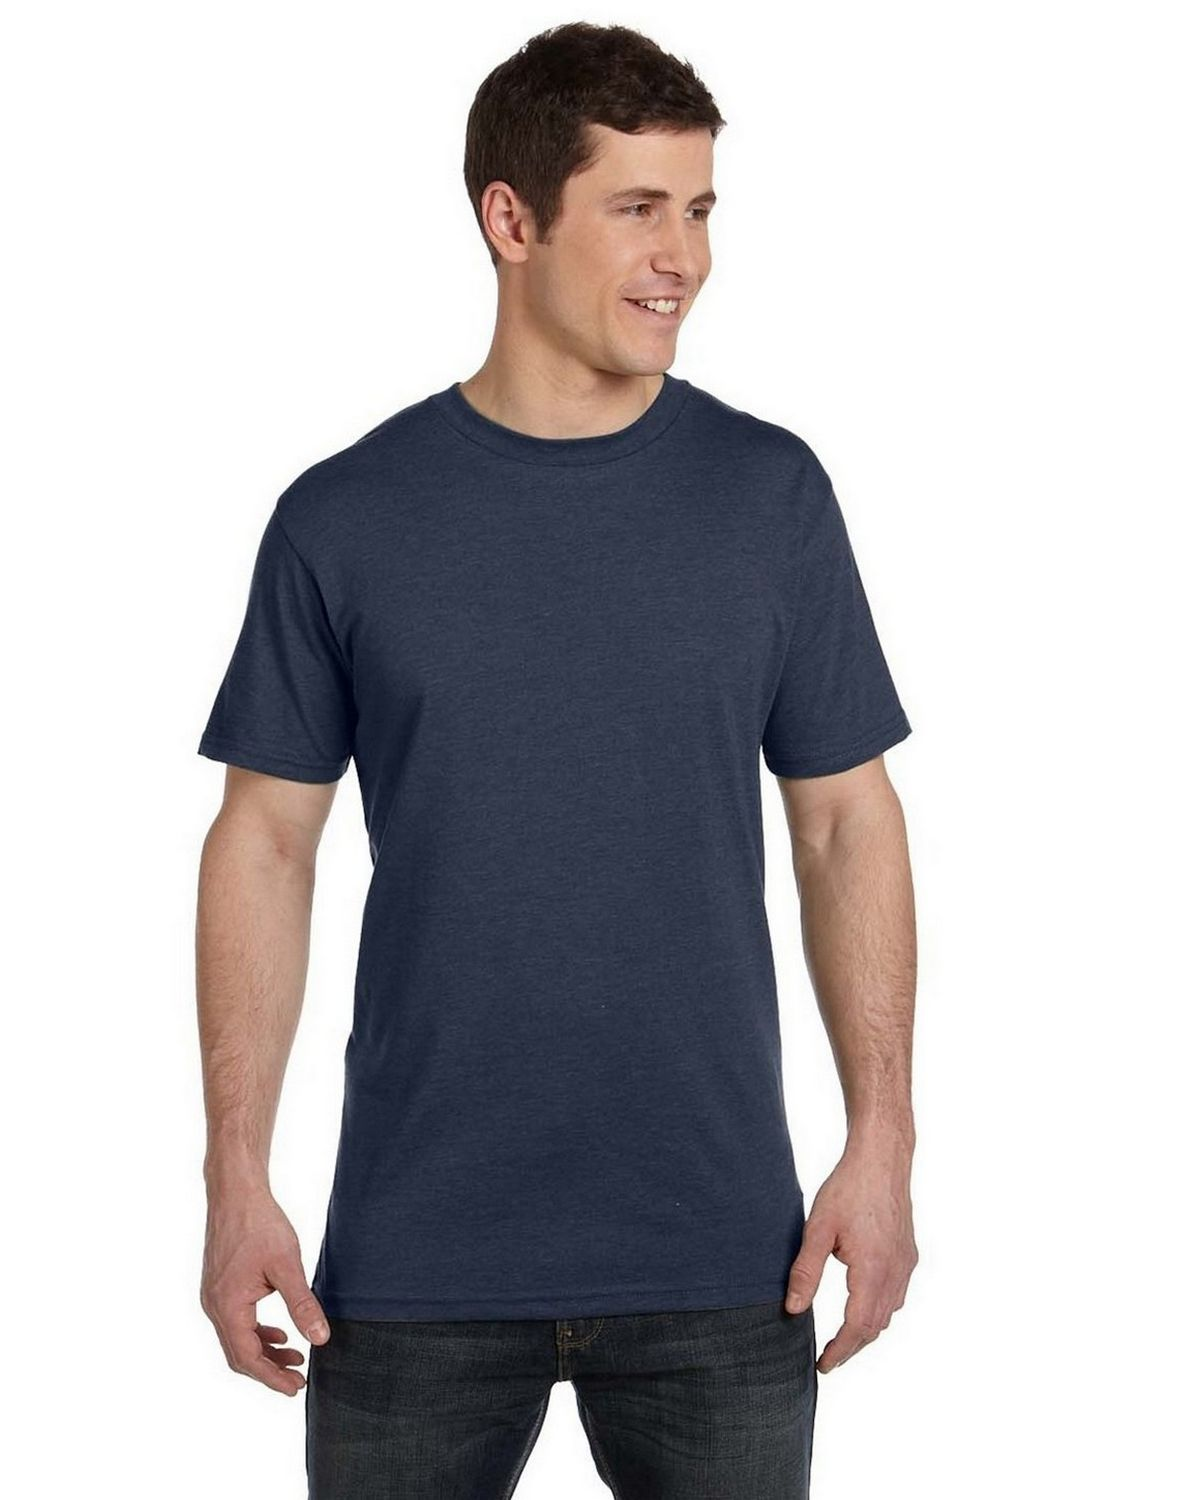 Econscious EC1080 Mens Blended Eco T Shirt - Water - XL EC1080